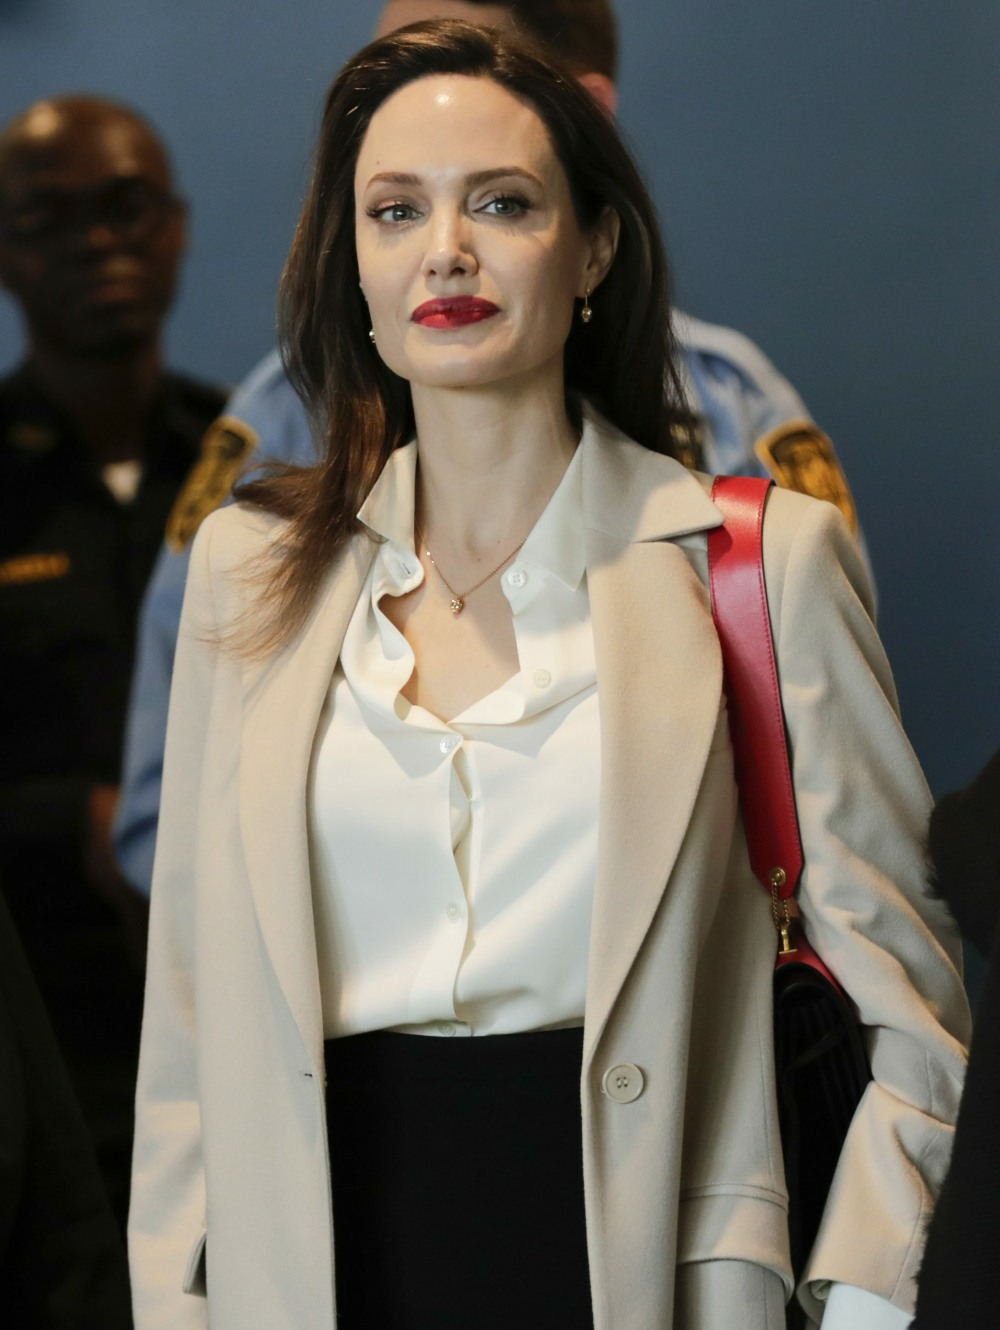 Angelina Jolie at UN for a Speech on Sexual Violence in Conflict